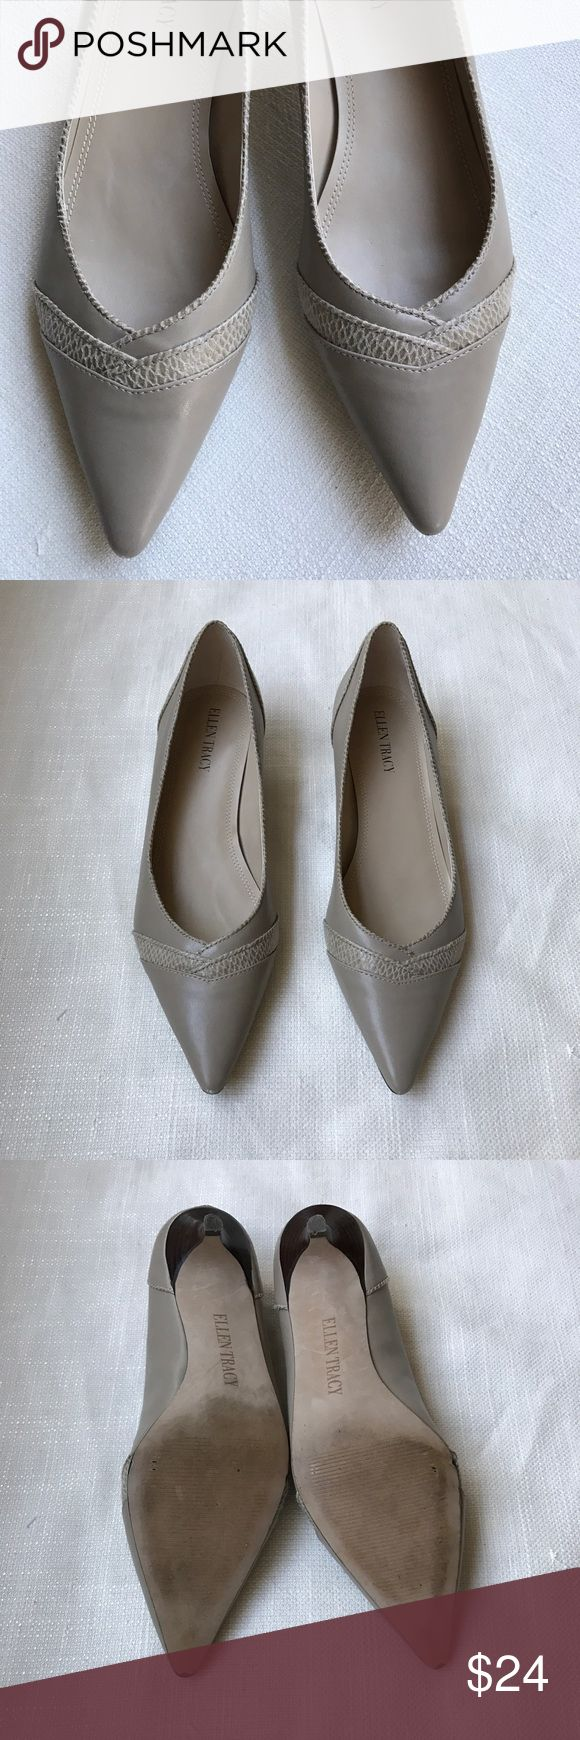 Ellen Tracy low heel pumps Nice Ellen Tracy taupe pumps with very low heel. Good used condition. Minor wear on bottoms. Comfortable and really great for work. Ellen Tracy Shoes Heels